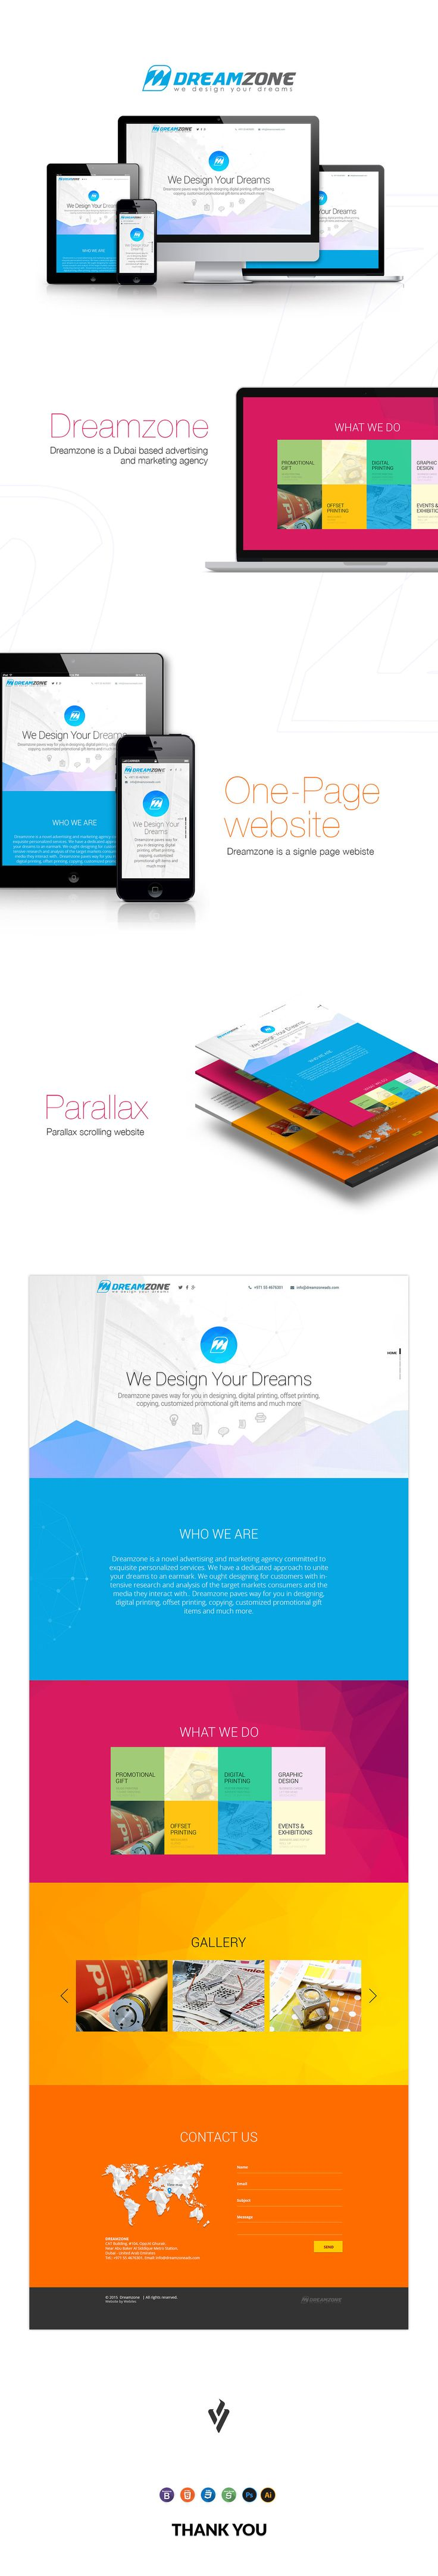 Dreamzone on Behance